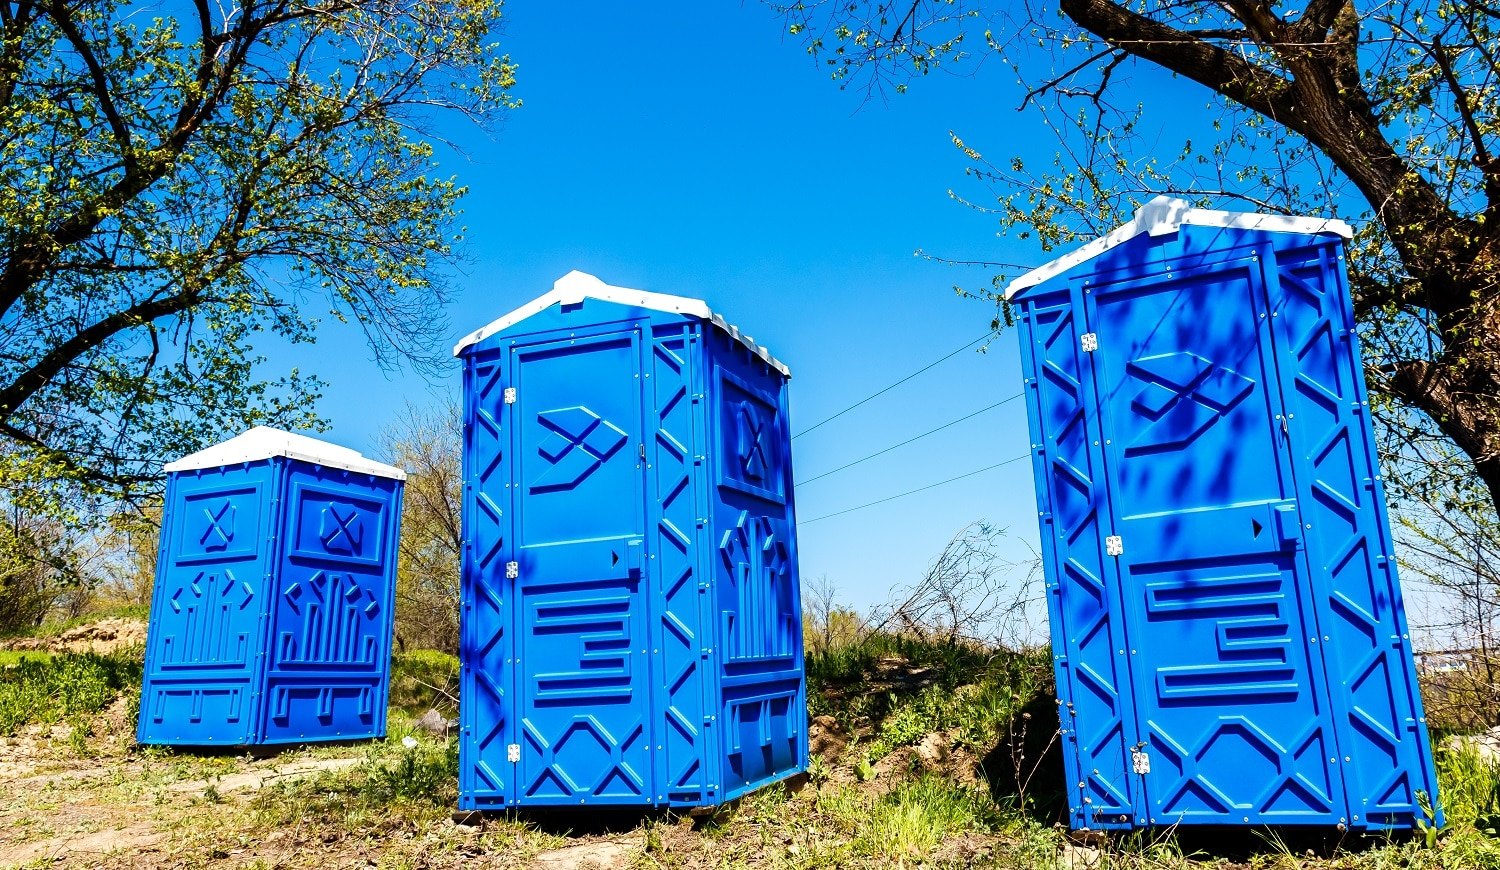 Three Blue Cabines Of Chemical Toilets In a Park at sunny Summer Day.